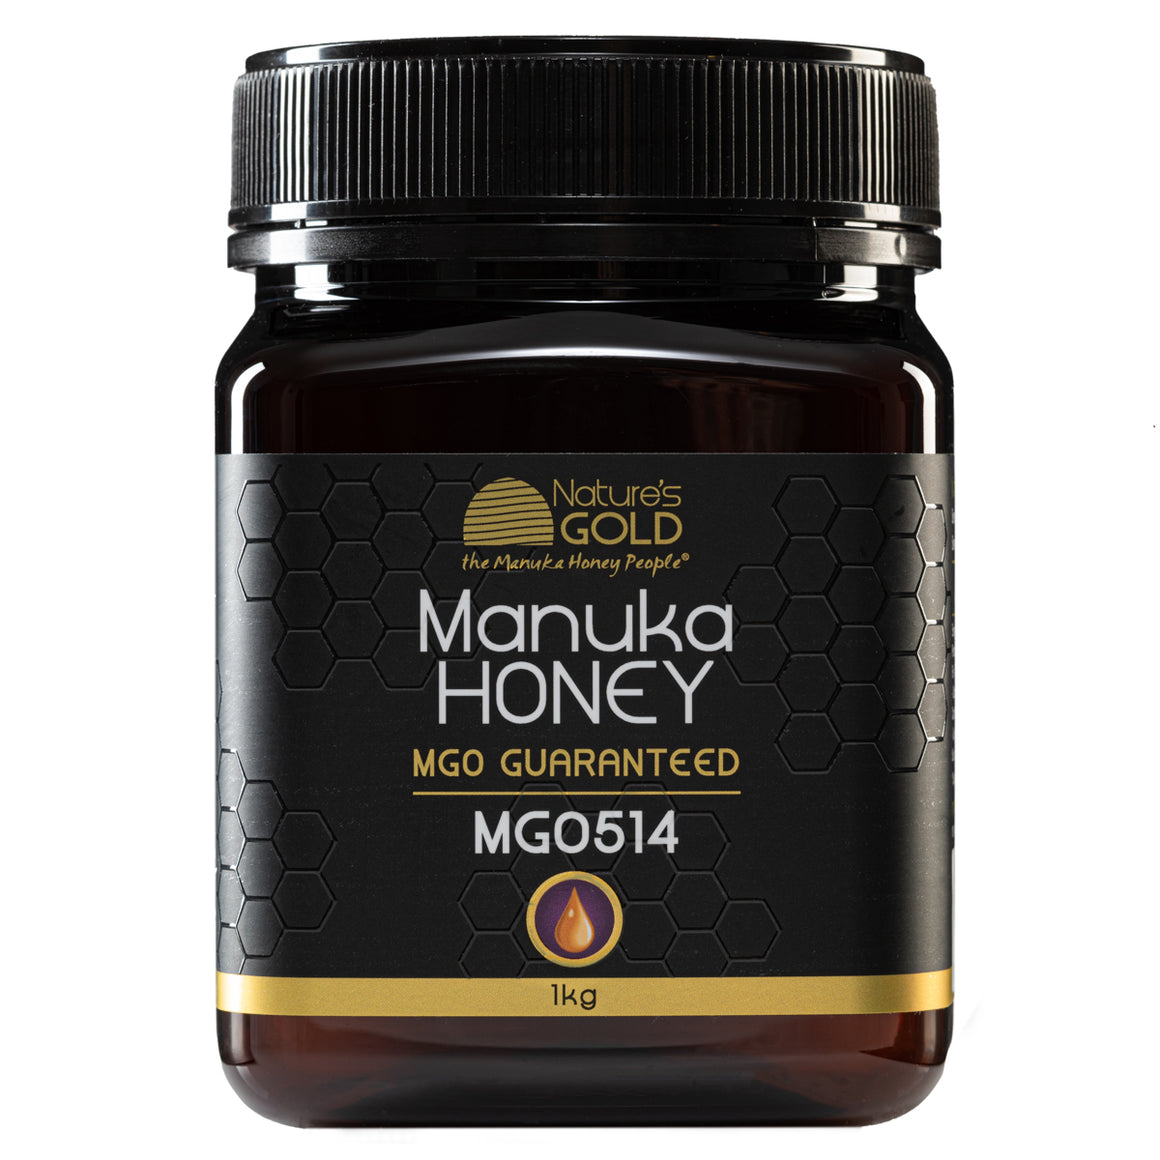 MGO 514 - 100% RAW AUSTRALIAN MANUKA HONEY